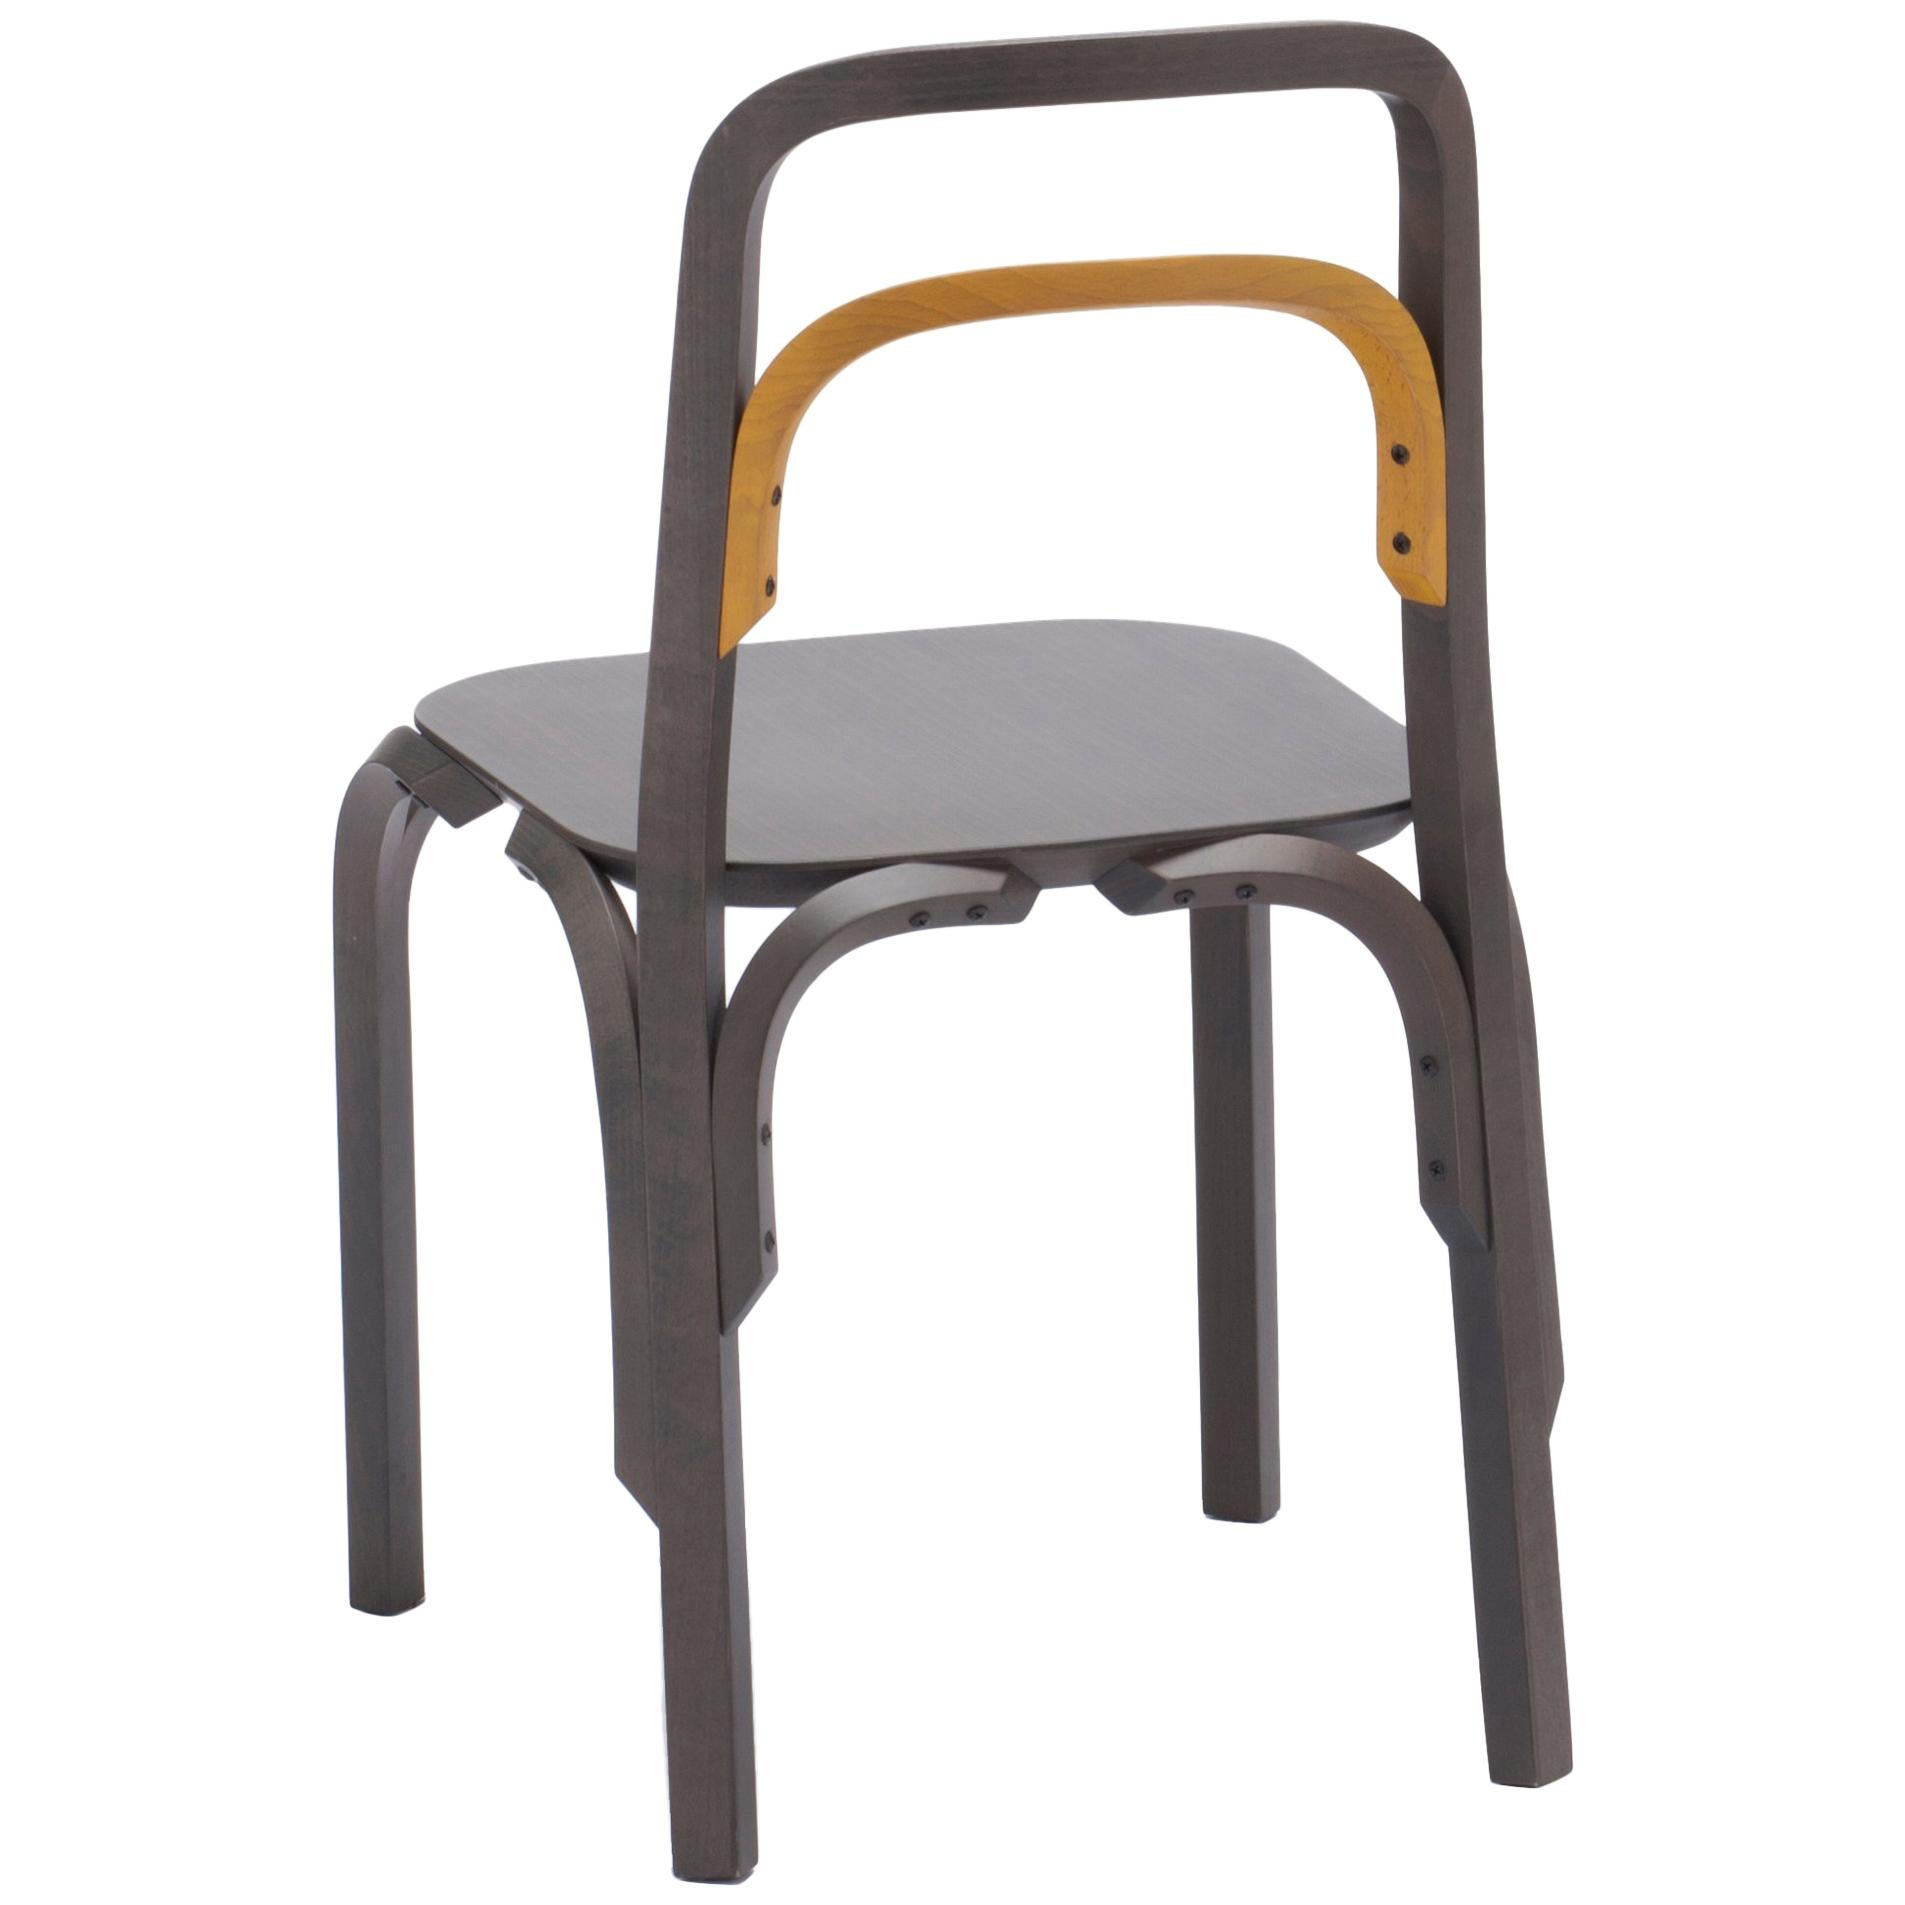 Established & Sons Sessel Chair in Gray Beech with Yellow Back by Martino Gamper